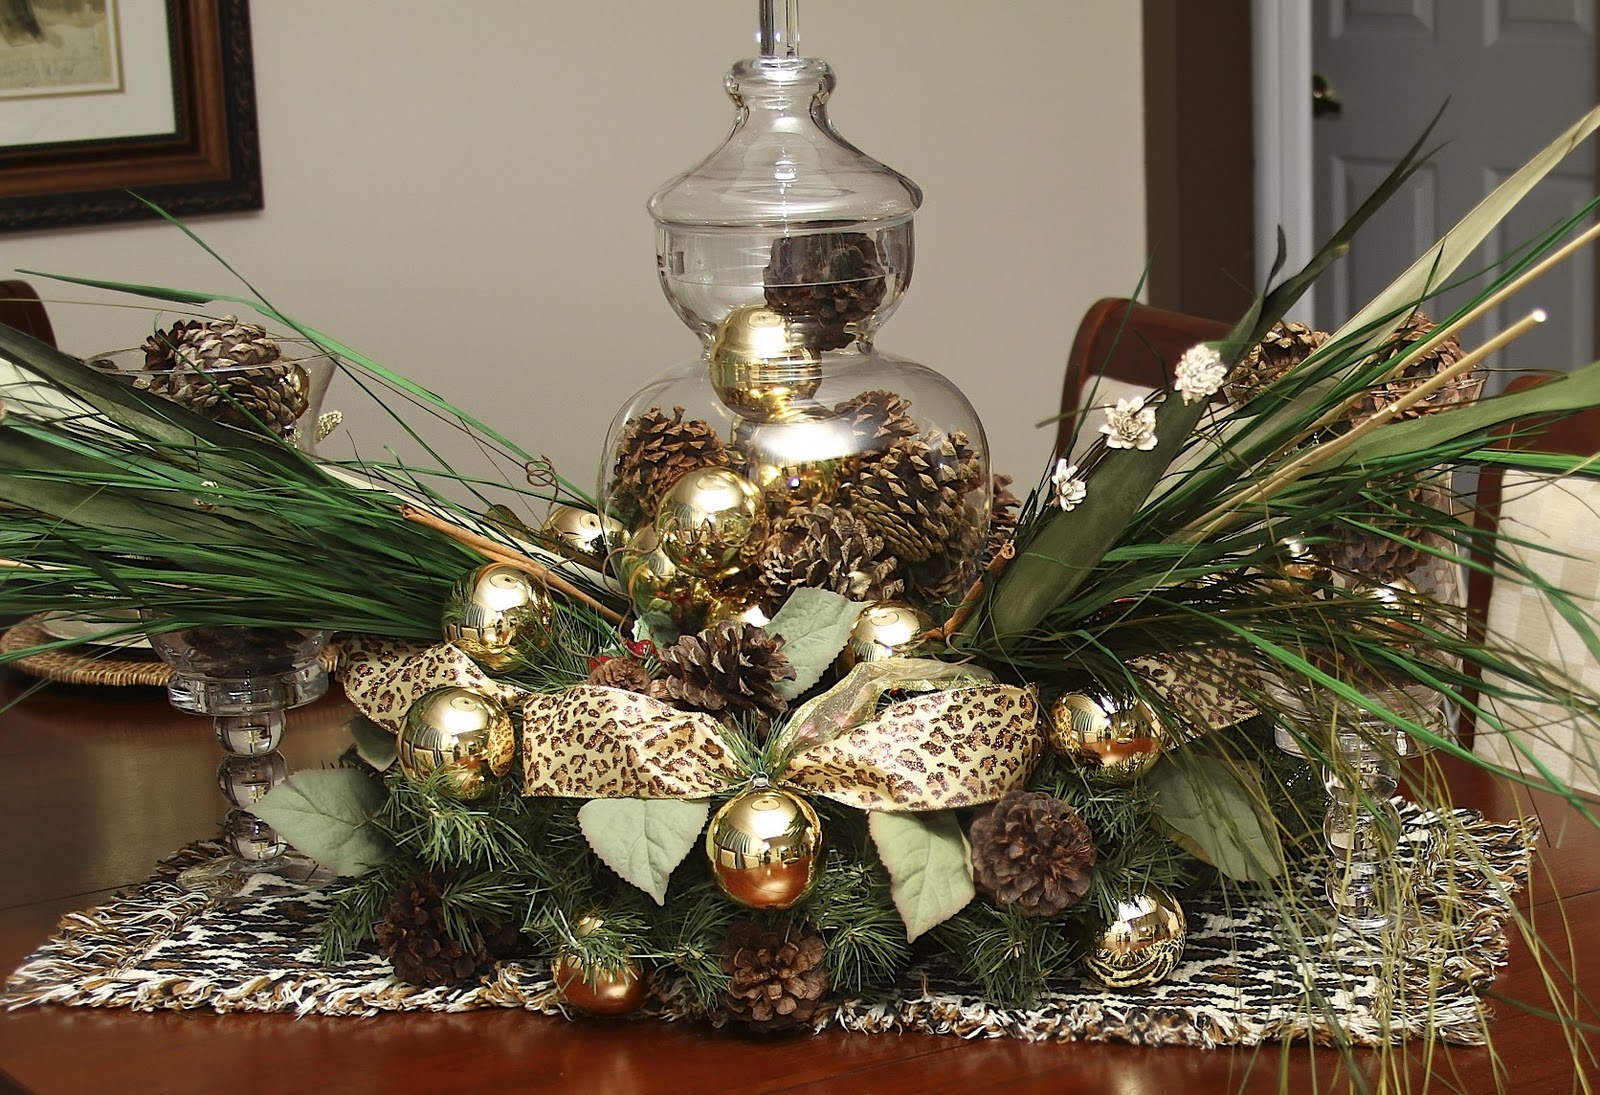 I Started With A Basic Christmas Wreath And Laid It On A Table Runner (leopard  Print, Of Course) I Then, Added An Apothercary Jar (filled With Pine Cones